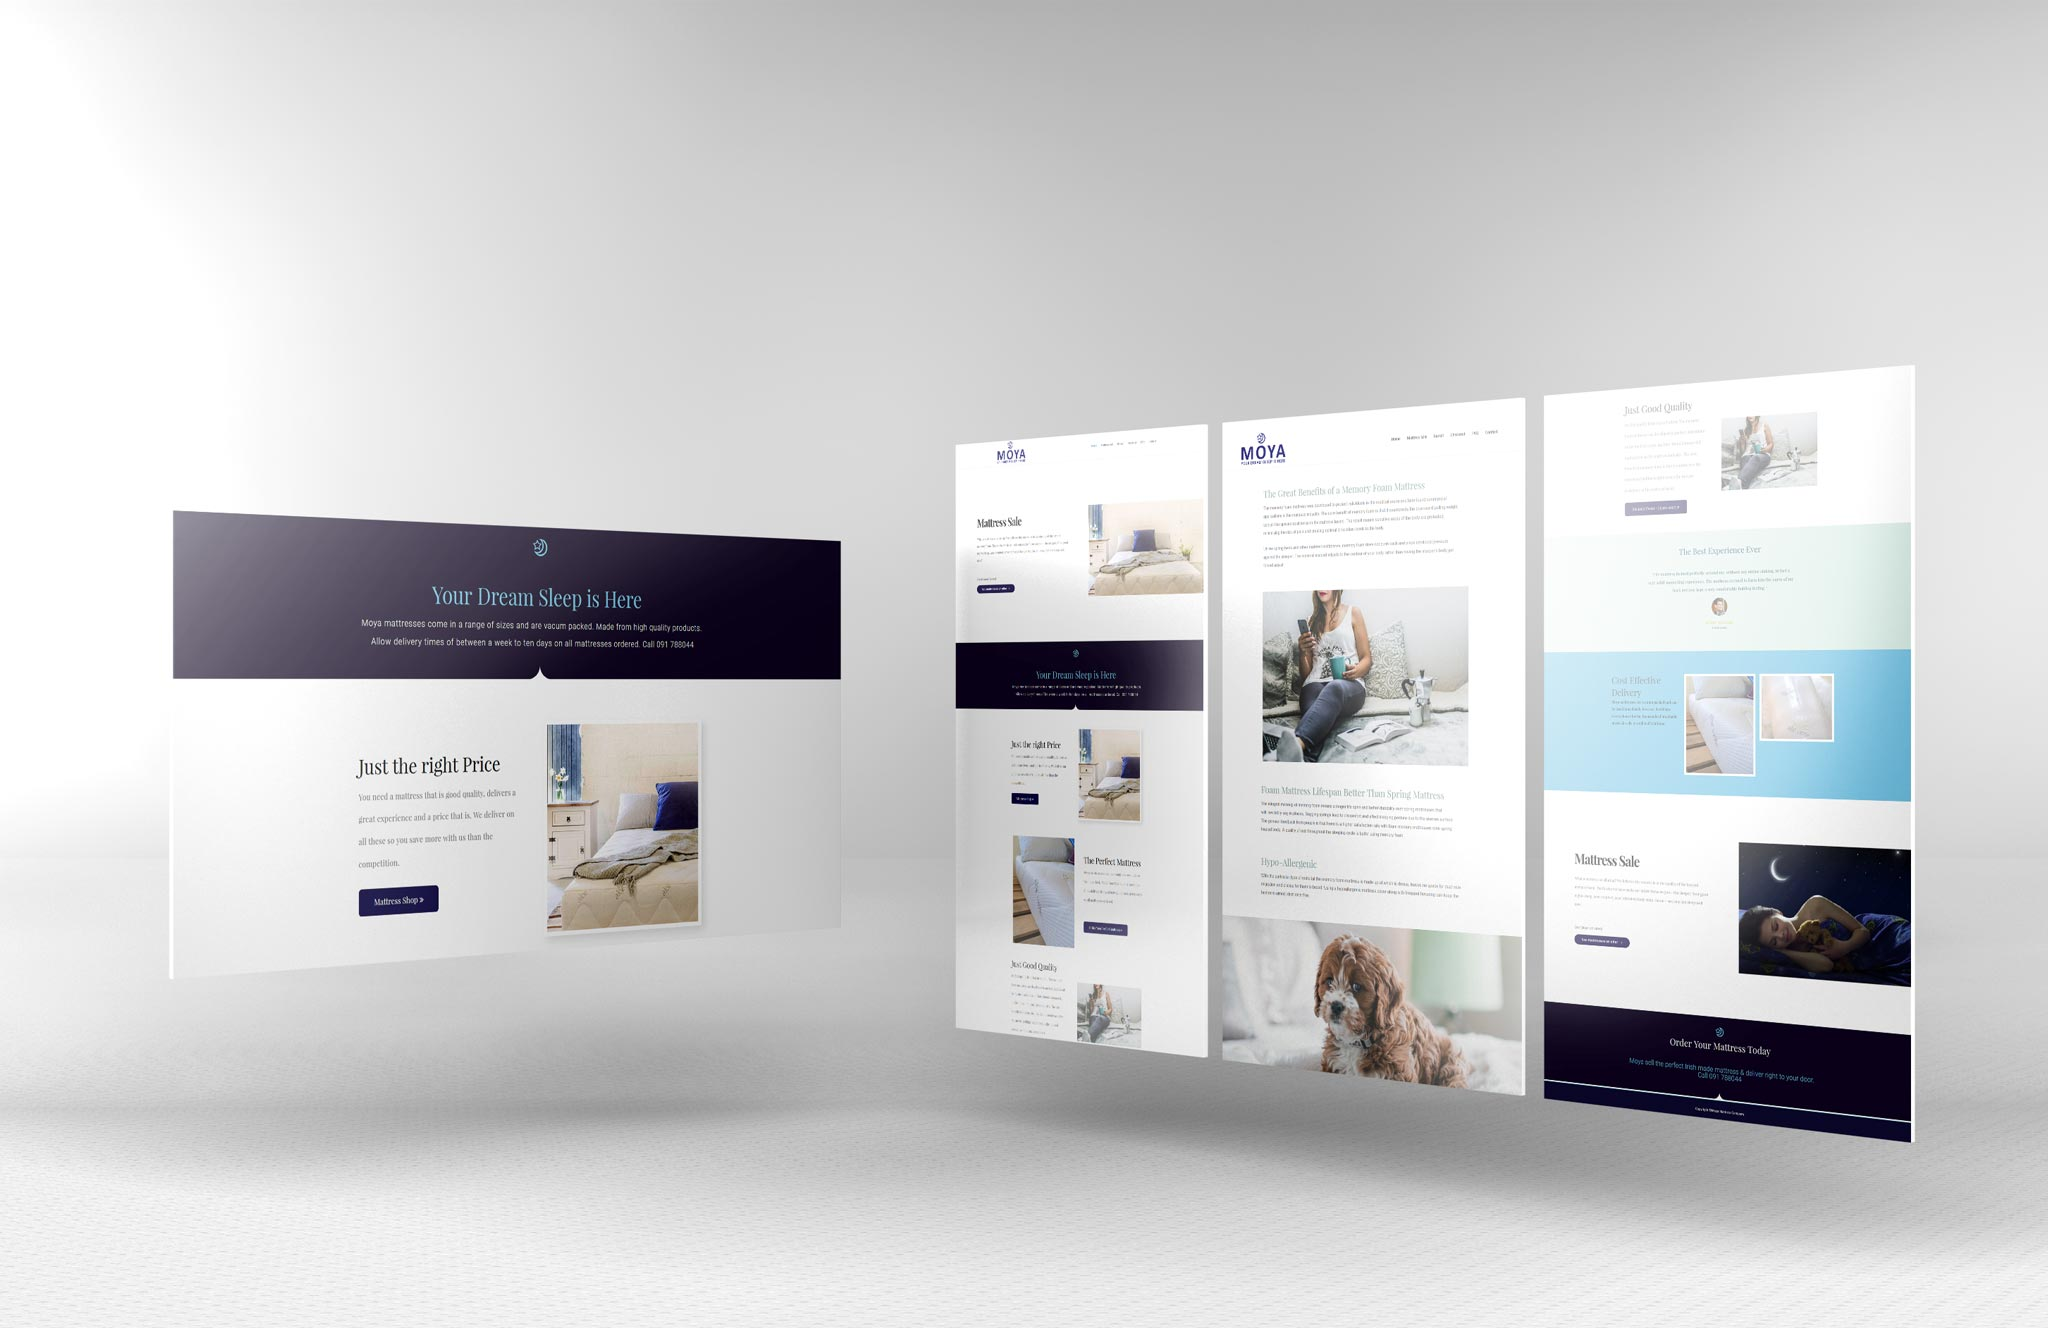 The Mattress Company Website Design Development Studio Based In Galway